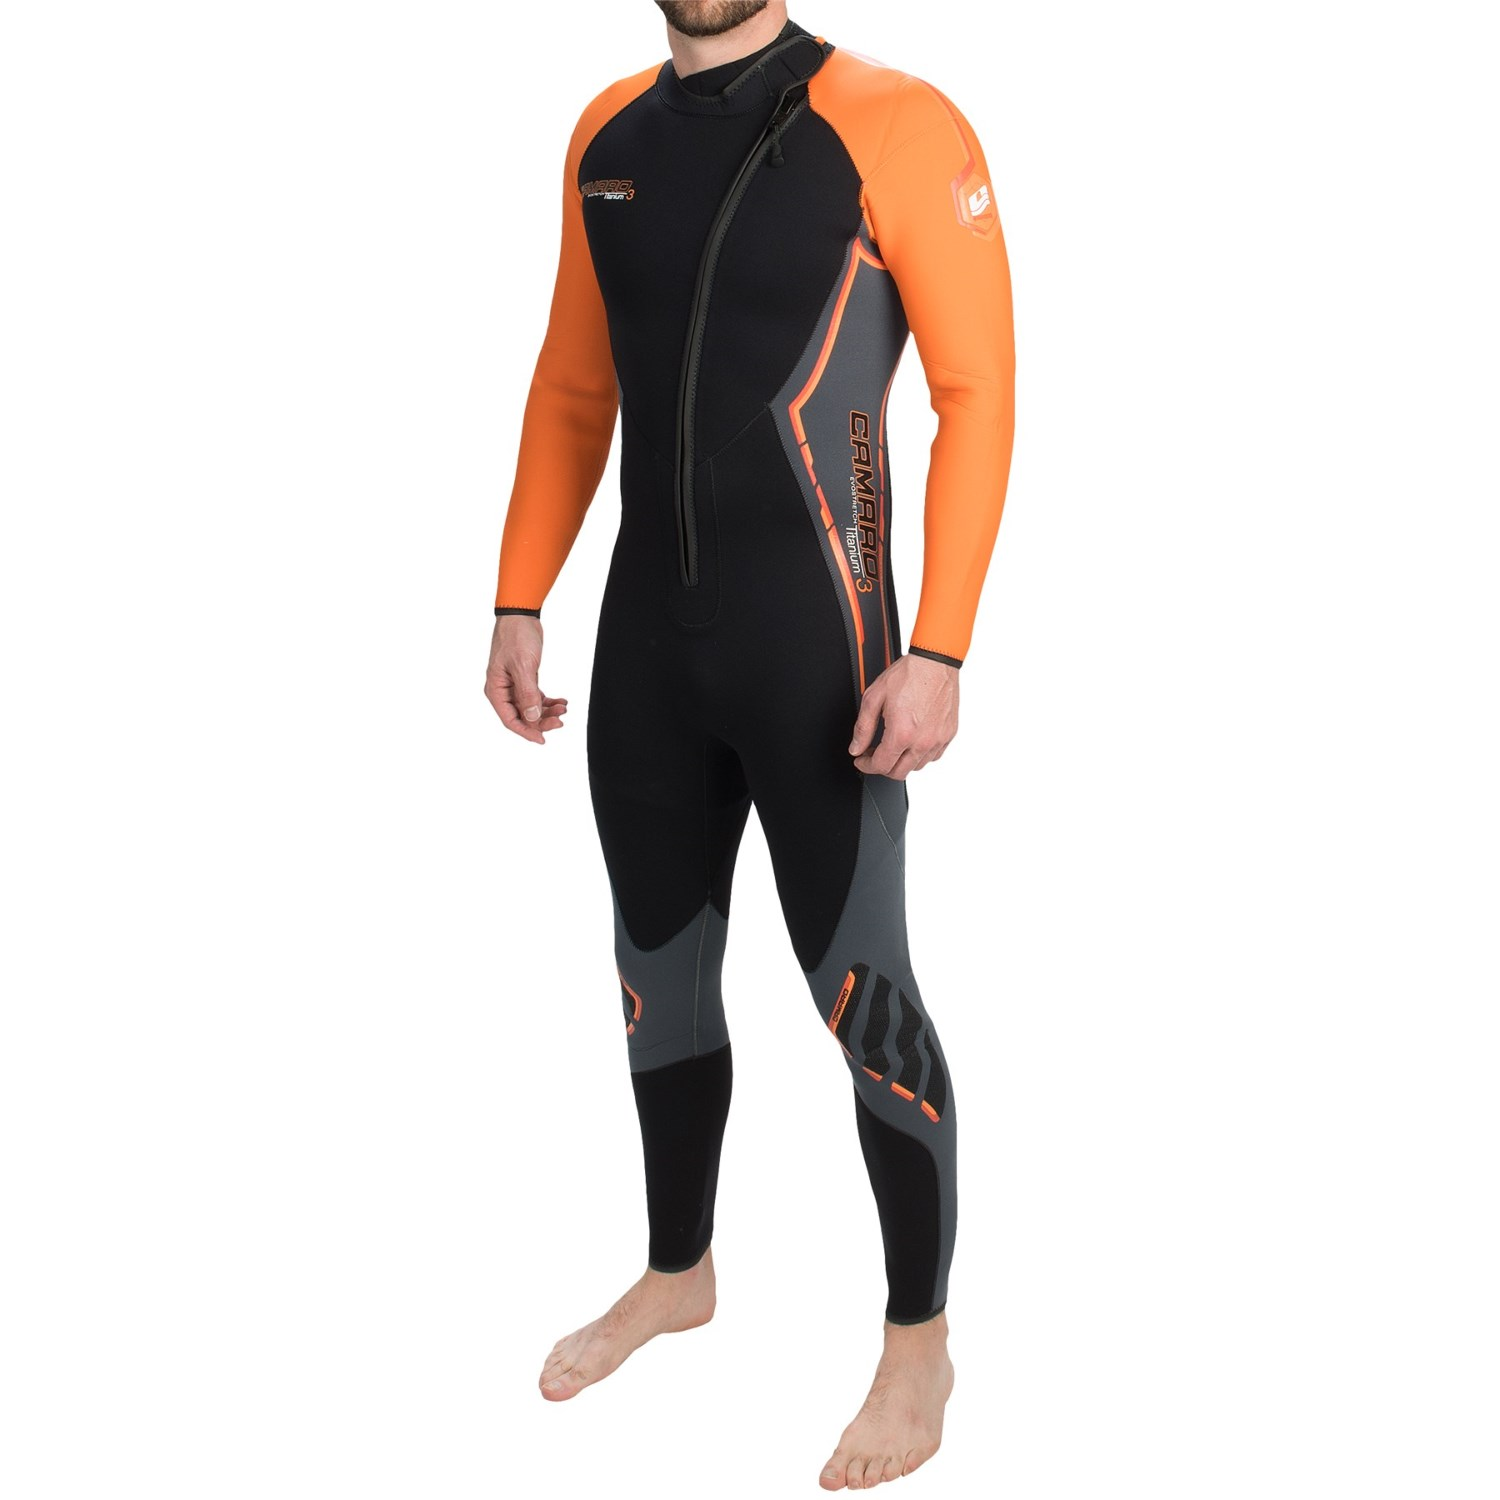 Camaro Titanium Tropic Wetsuit (For Men) - Save 49%